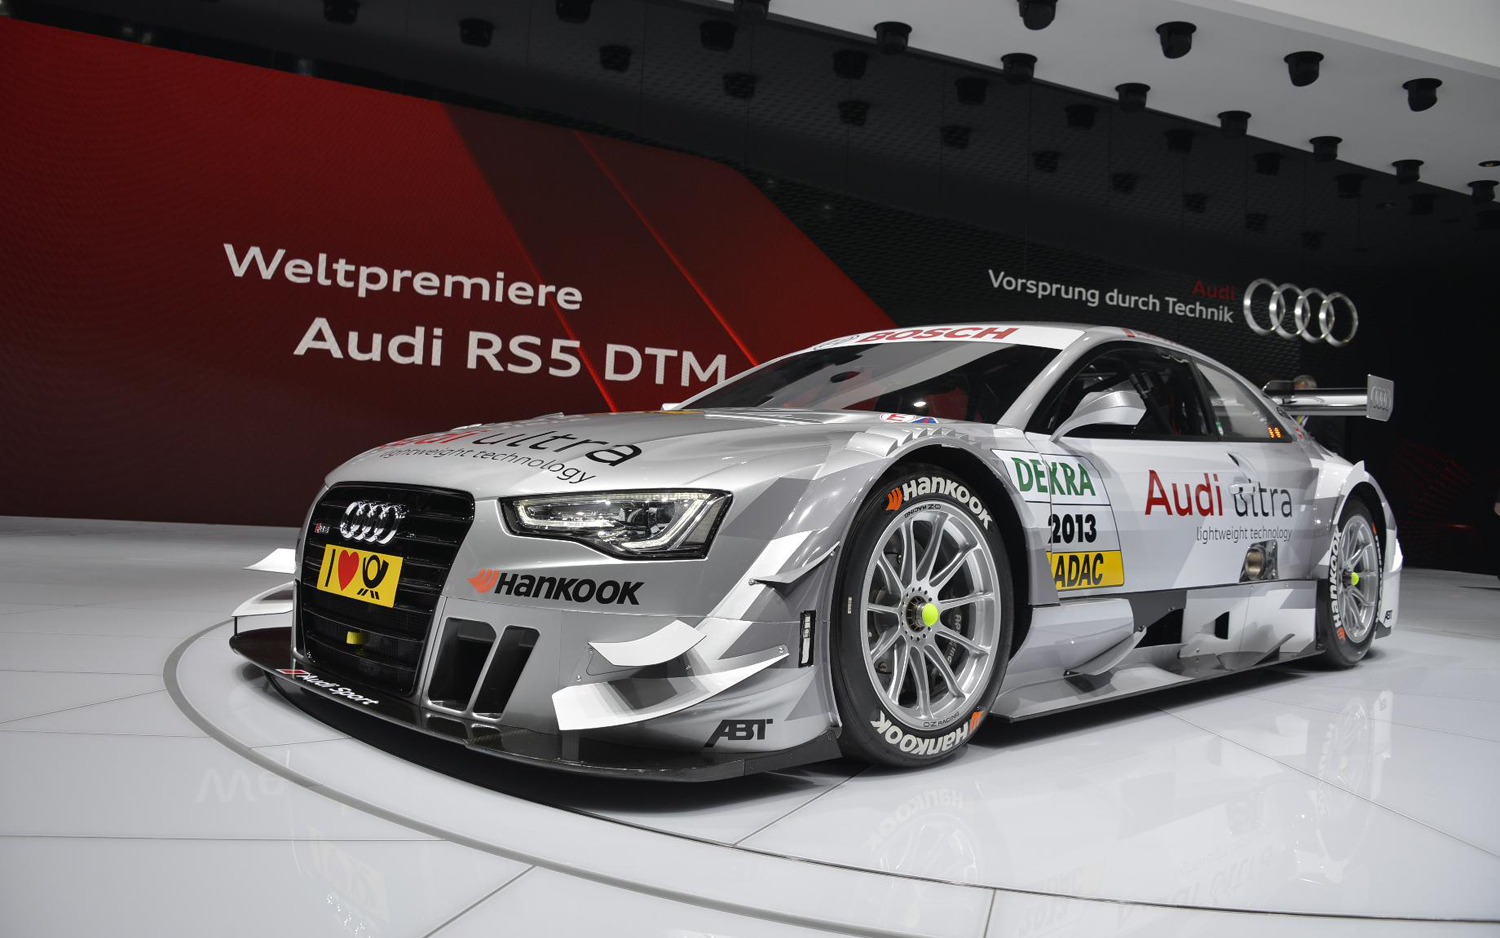 Audi R8 E Tron Will Star In Iron Man 3 Rs5 Dtm Racer Debuts In Geneva New Cars Reviews